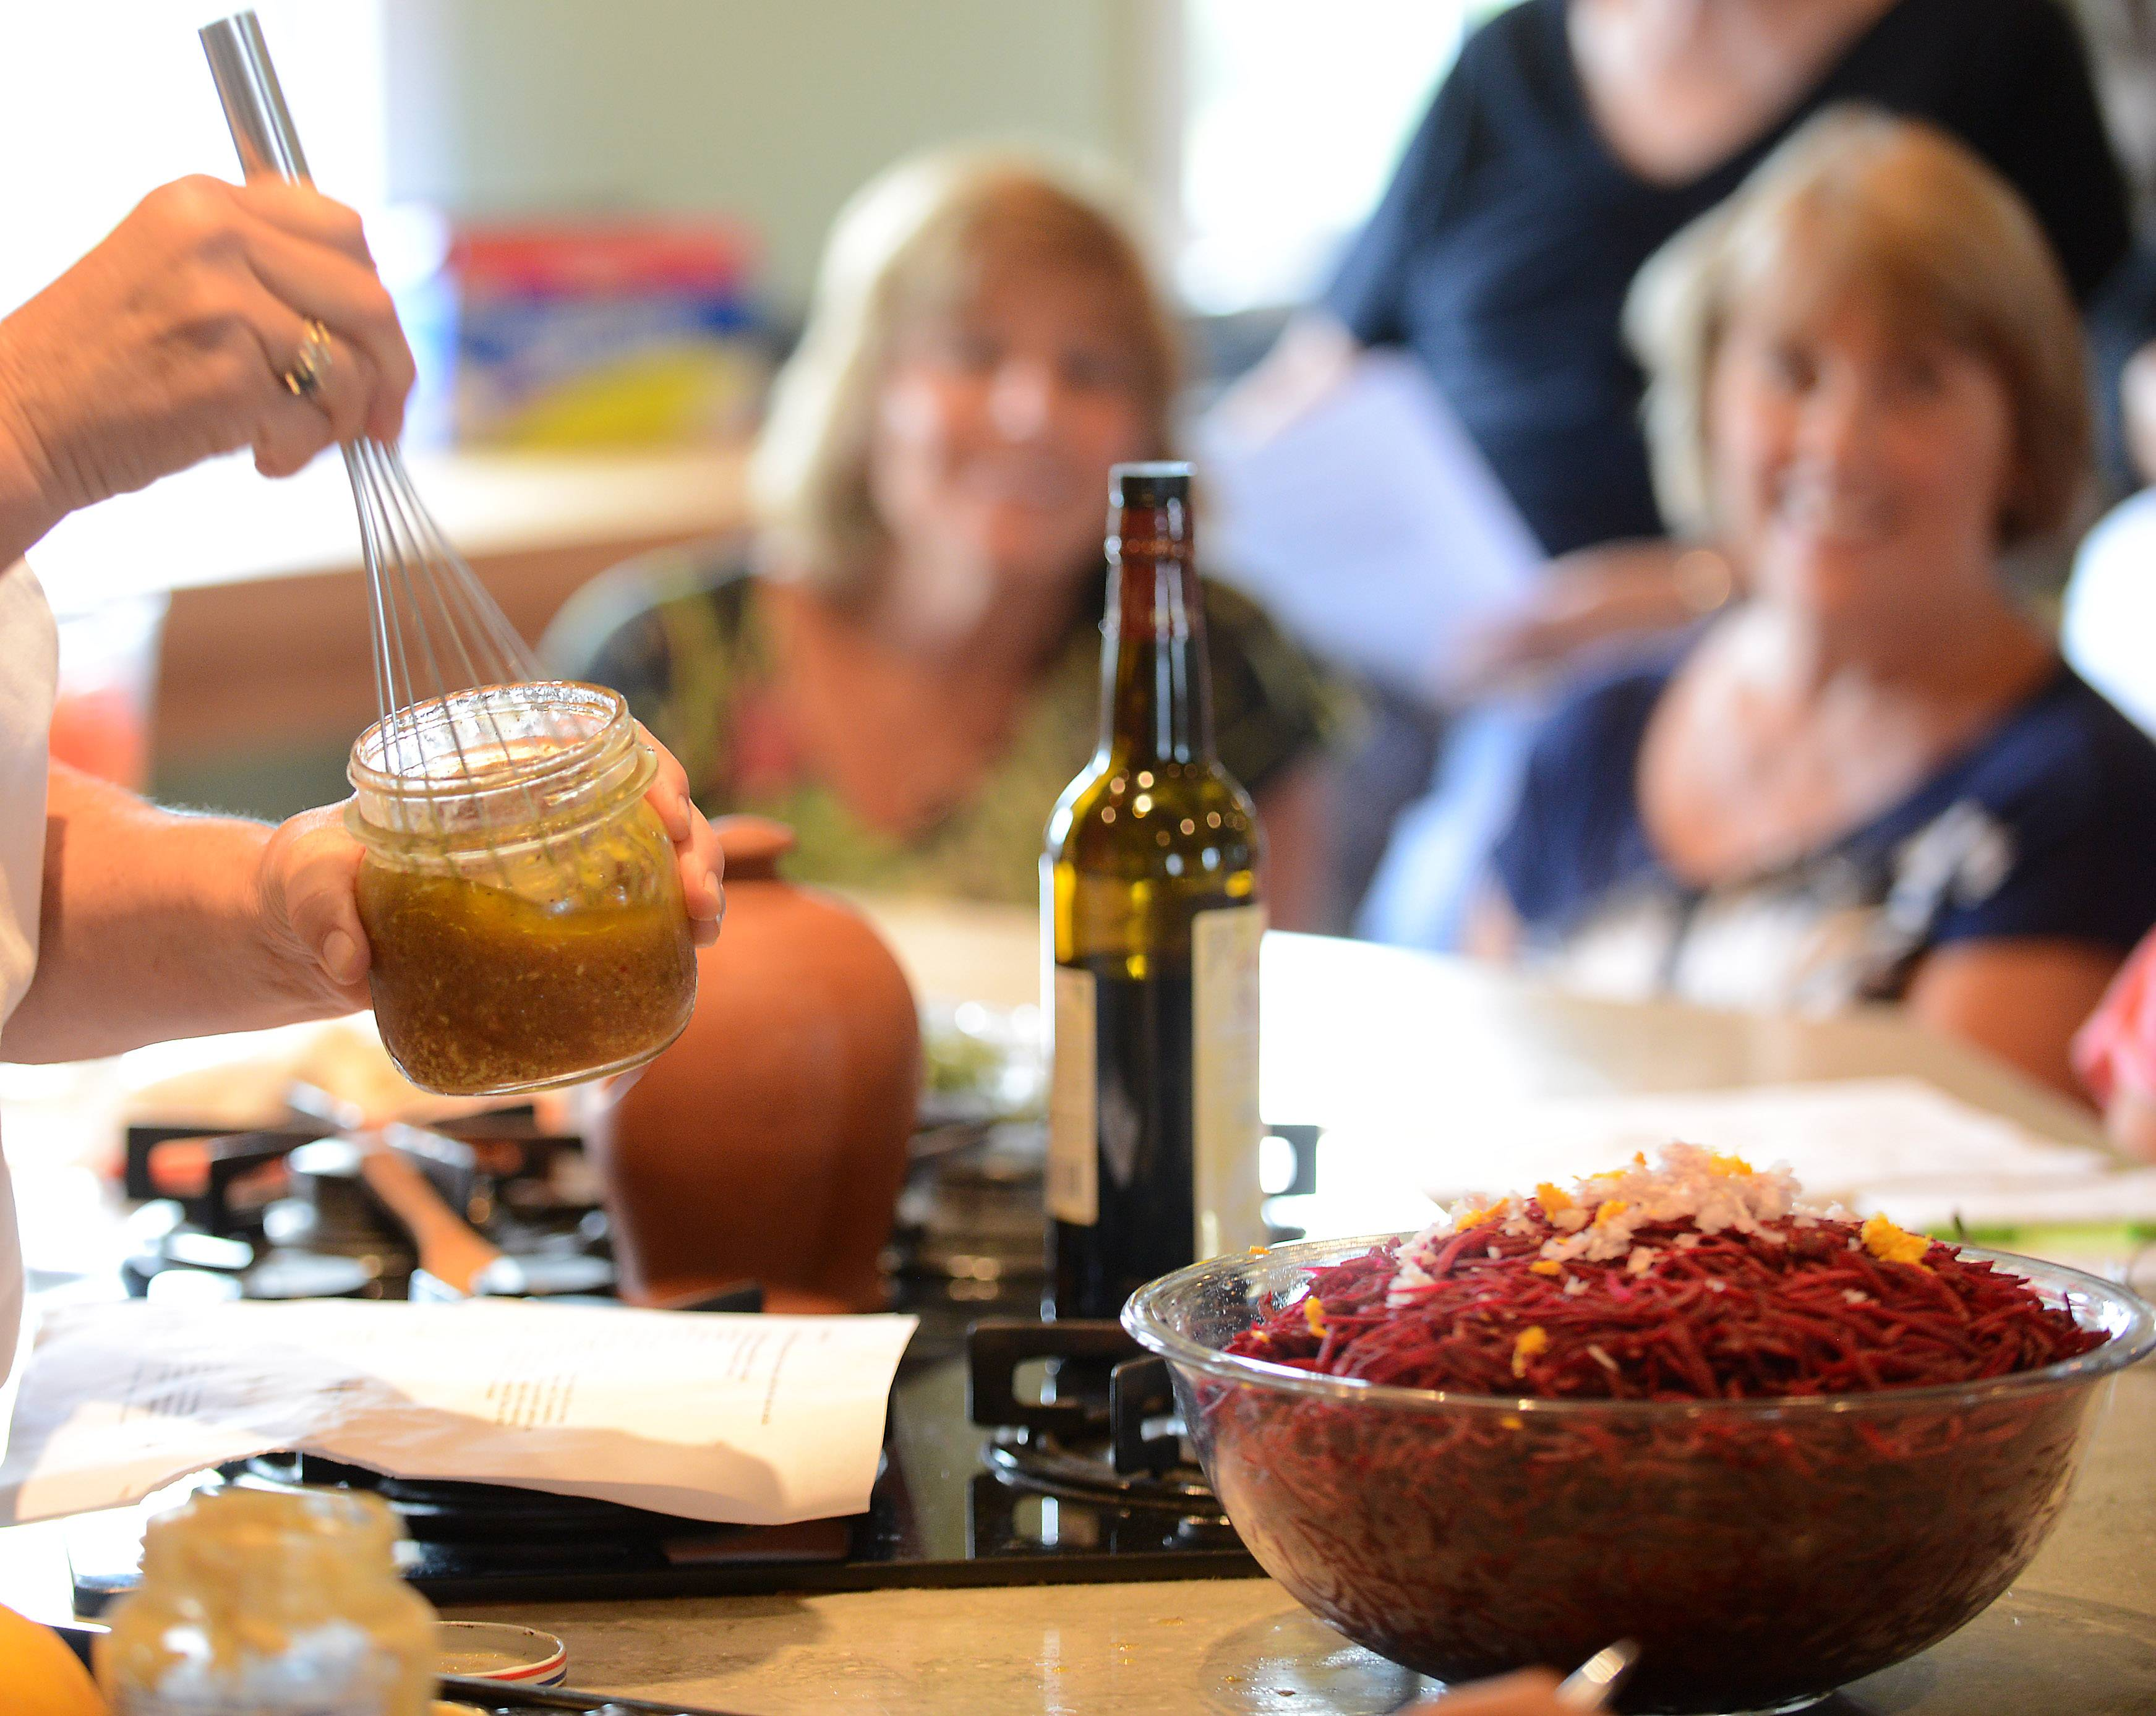 Penny Newkirk of Country Garden Cuisine whisks a vinaigrette for a beet salad during a class of around 20 students.